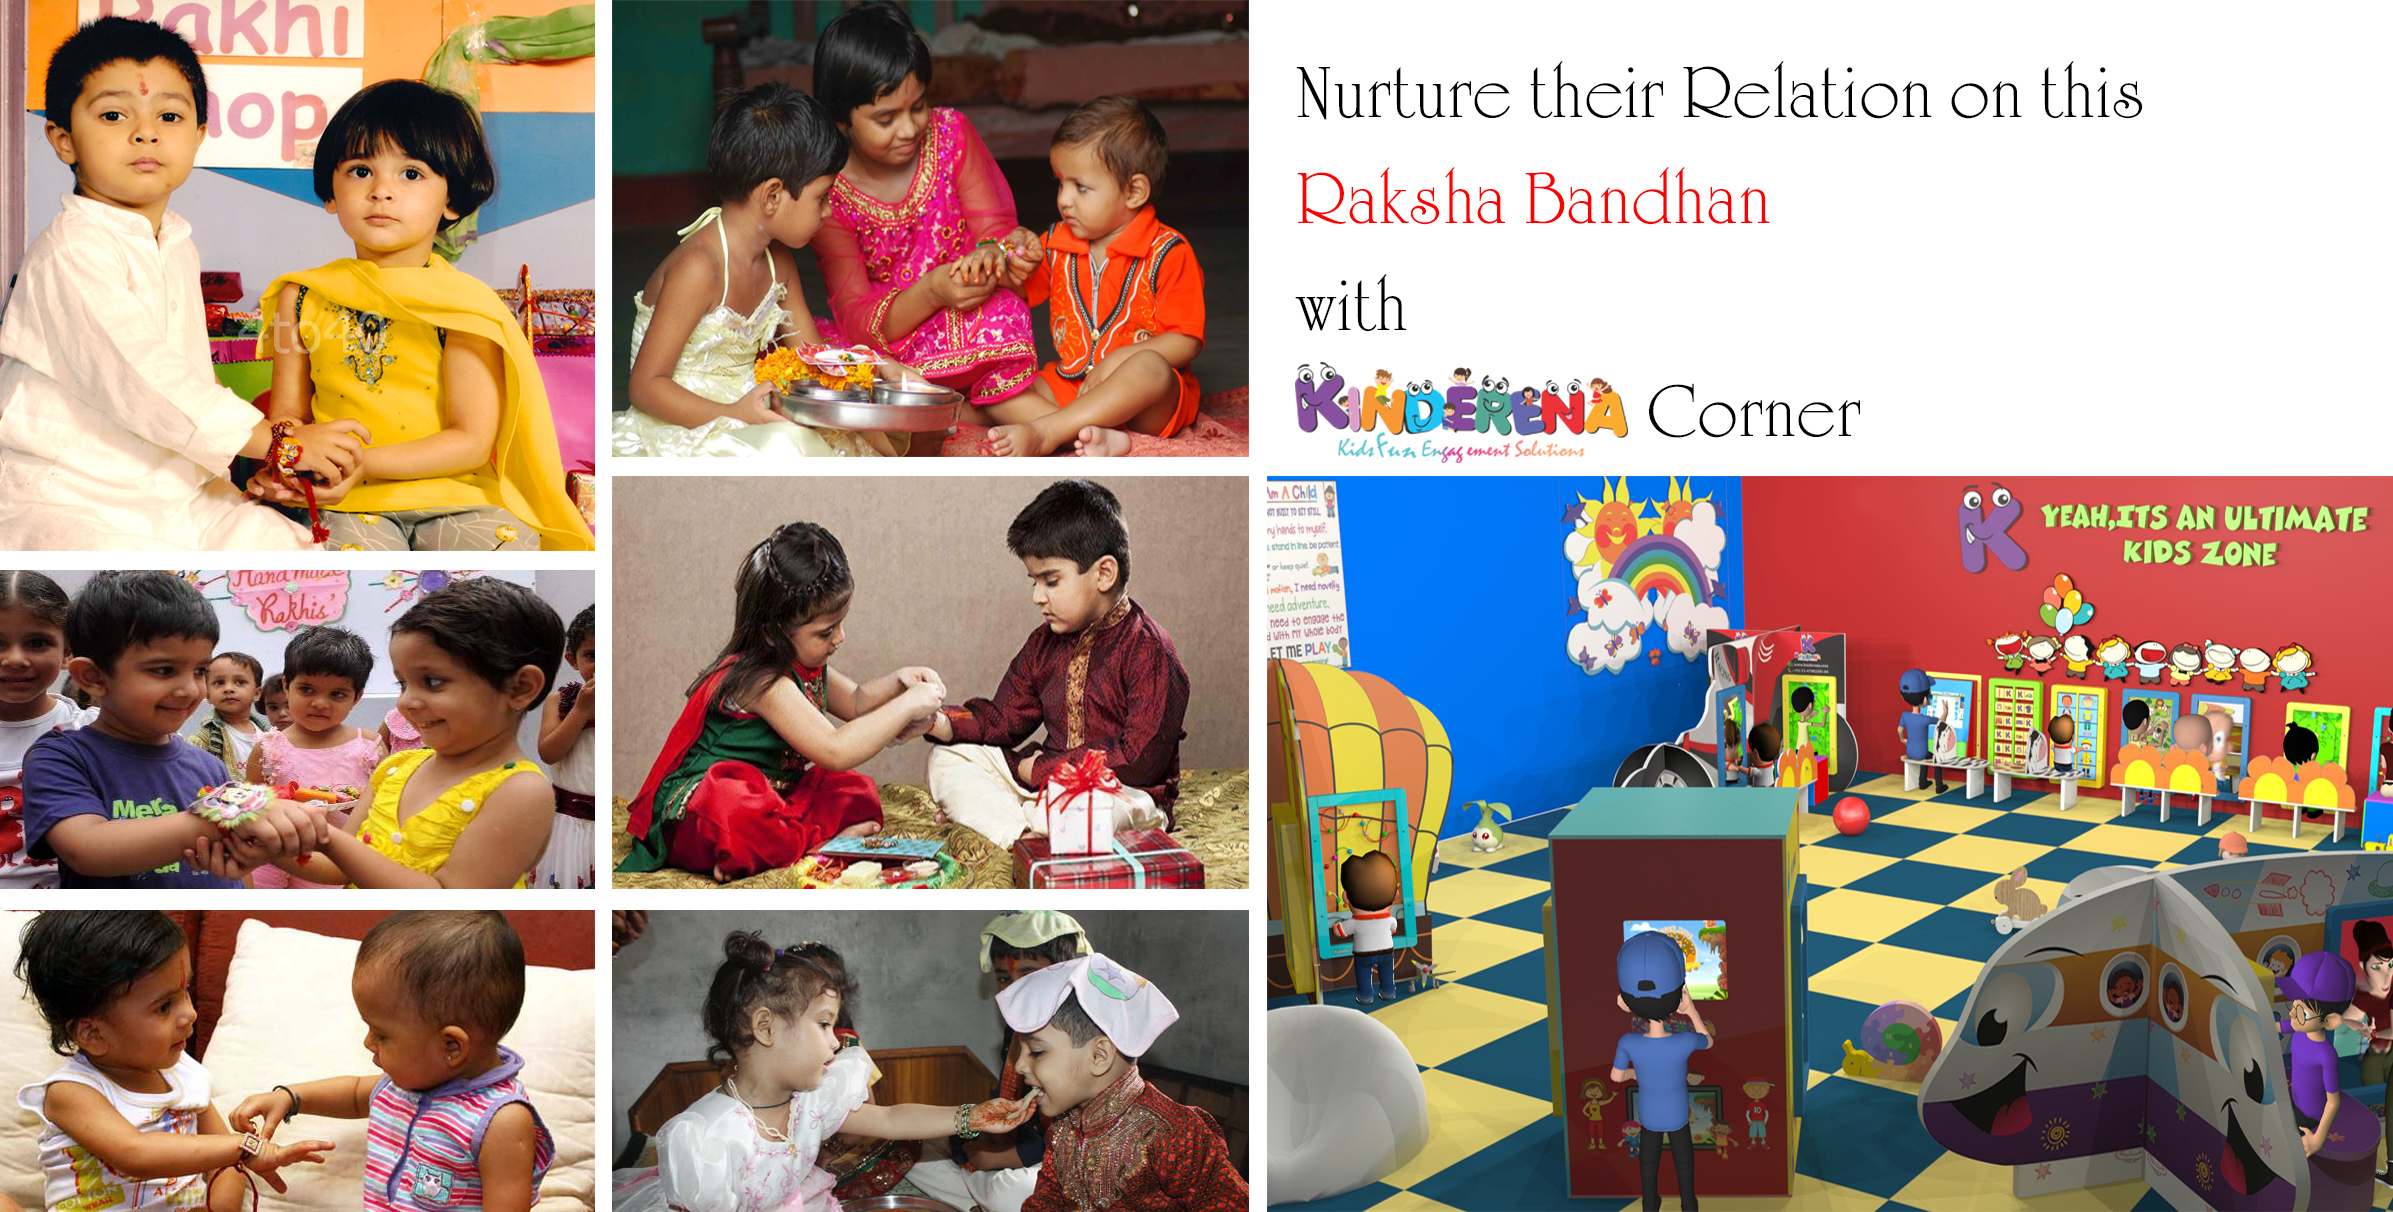 Nurture their Relation on this Raksha Bandhan